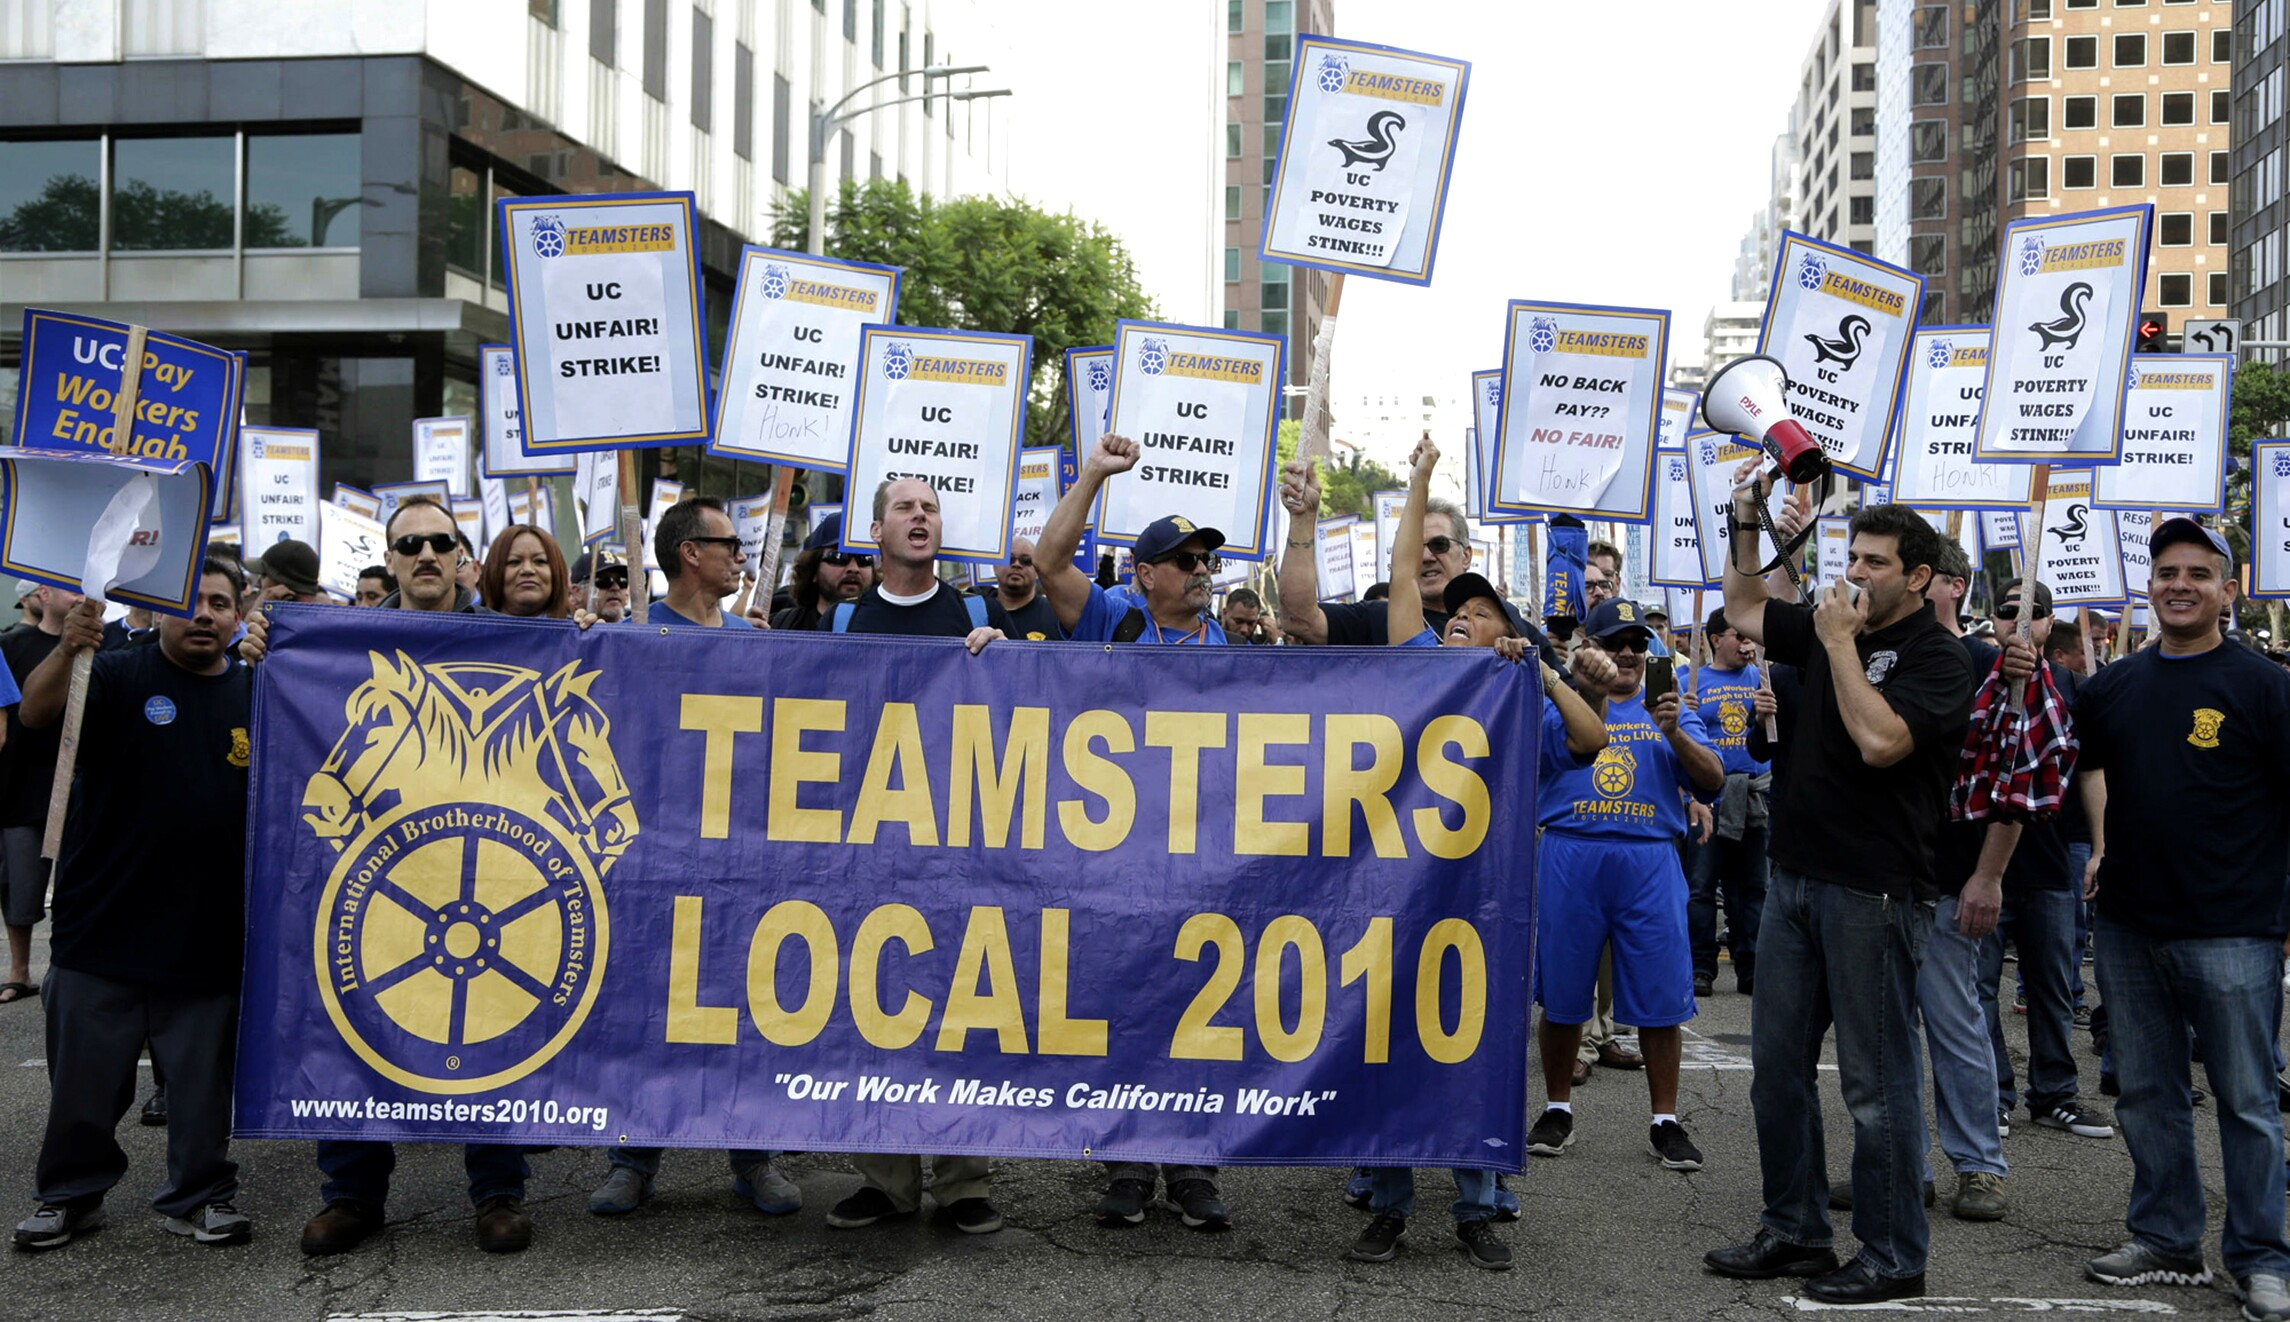 Unions give $1 3 billion to Democrats, liberal groups since 2010